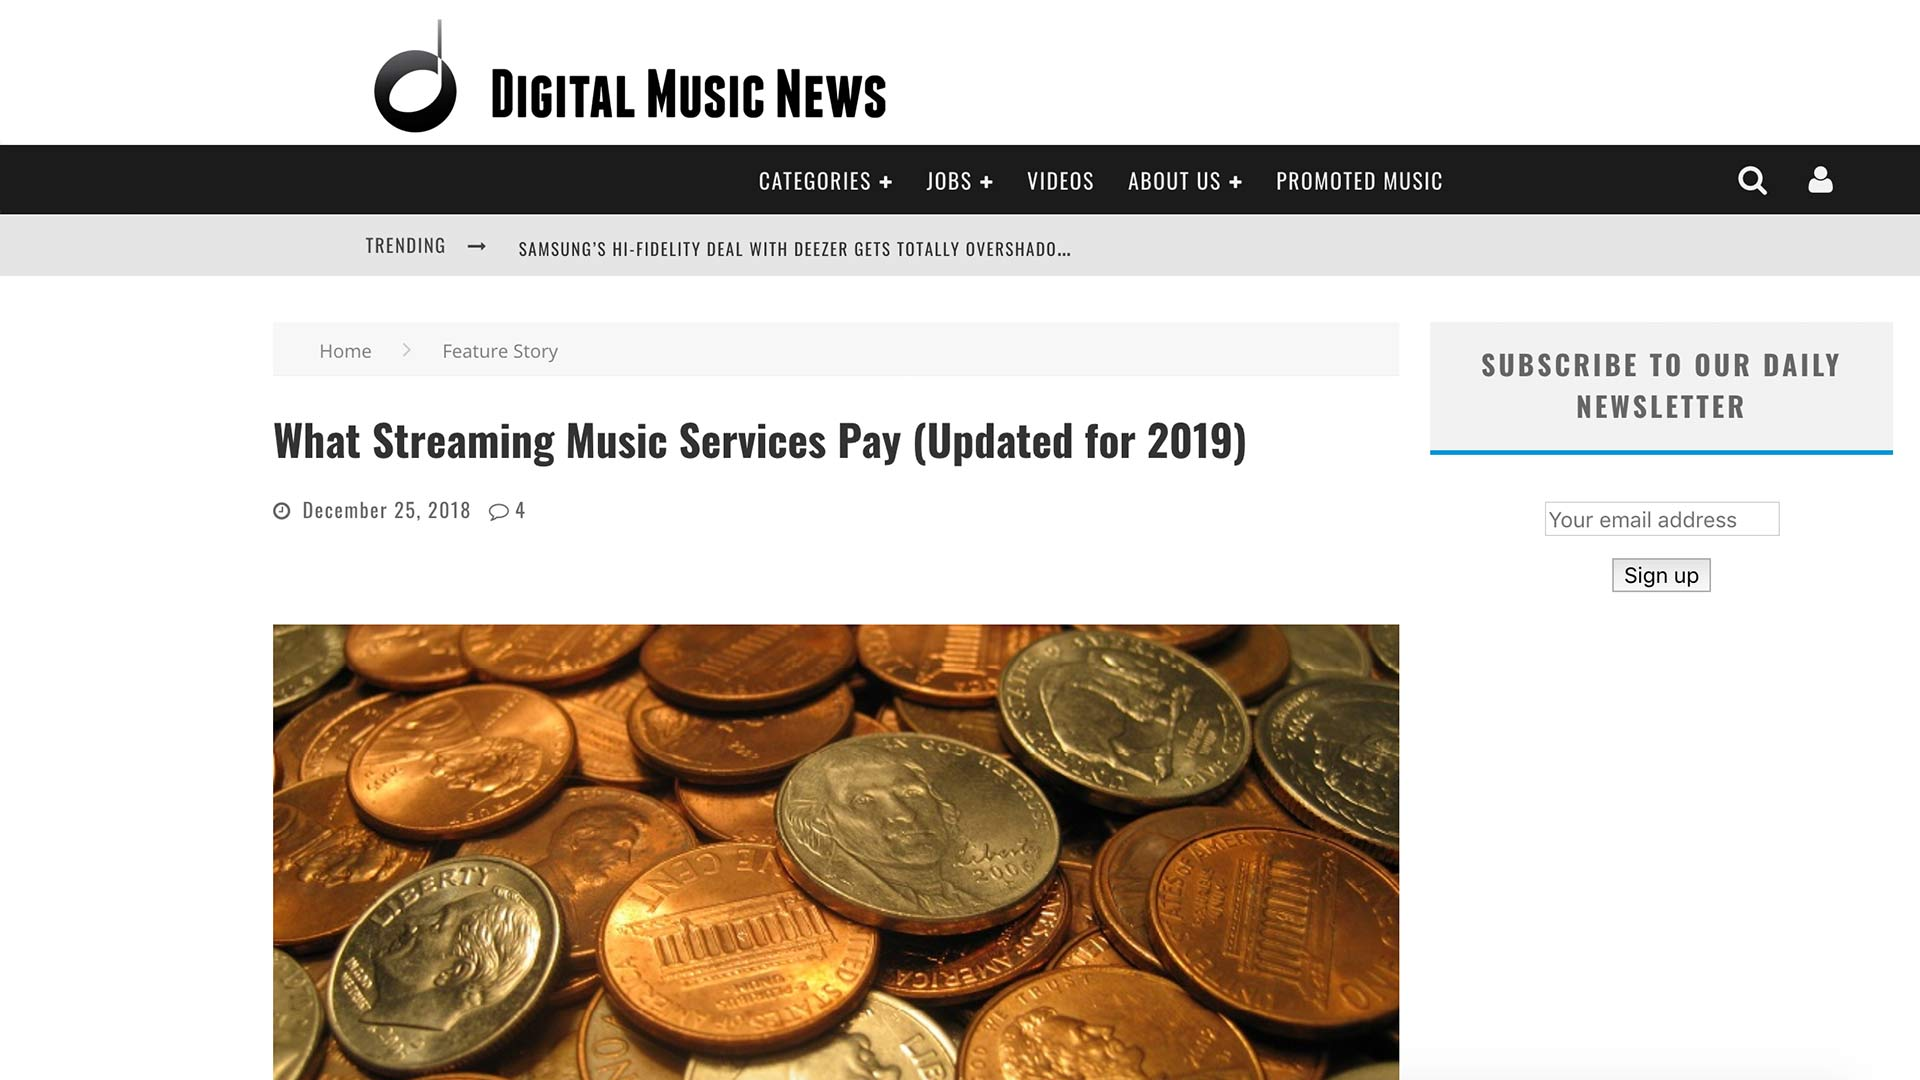 Fairness Rocks News What Streaming Music Services Pay (Updated for 2019)